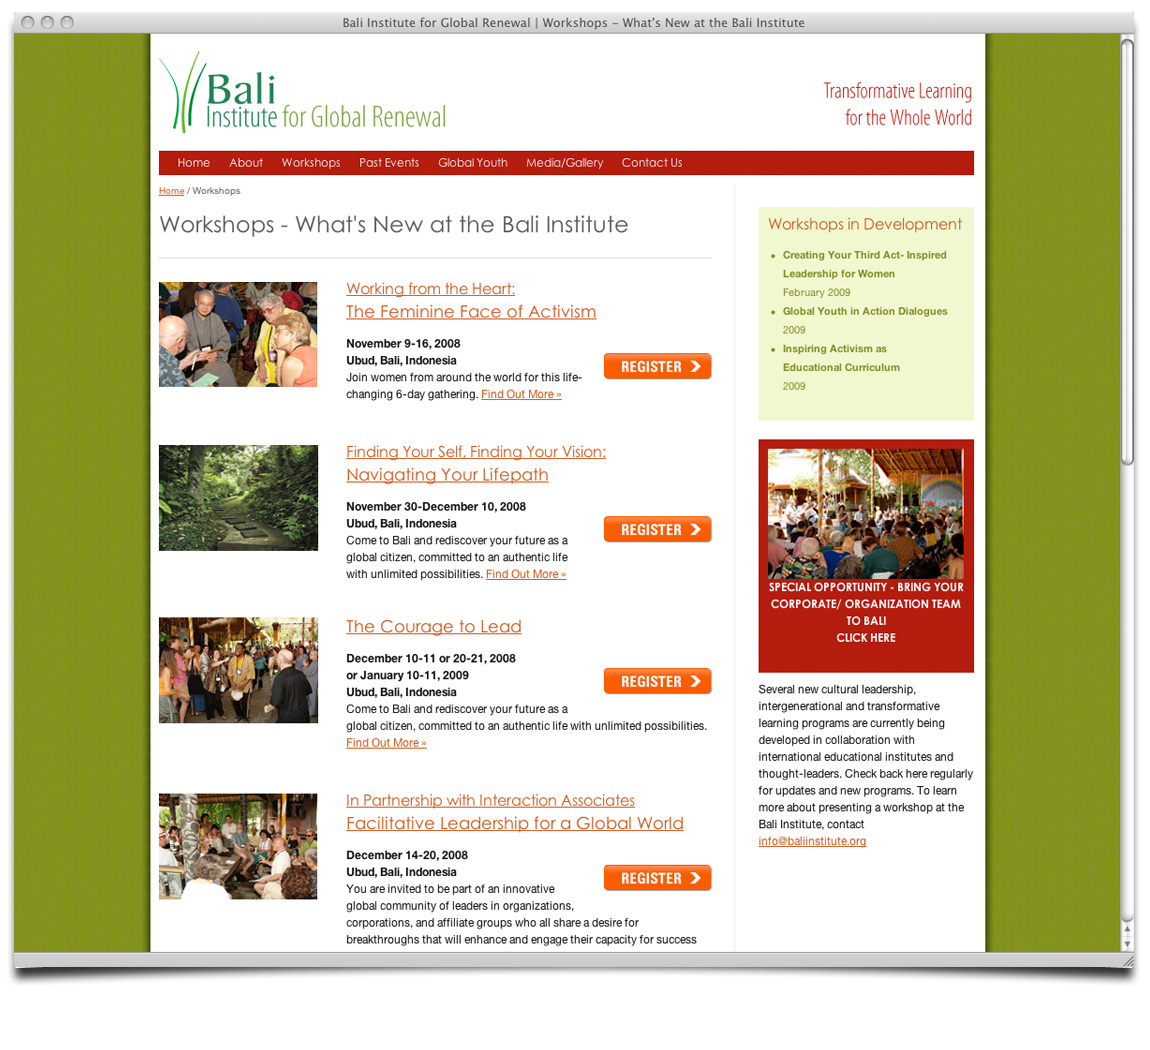 Bali Institute for Global Renewal Workshop Page